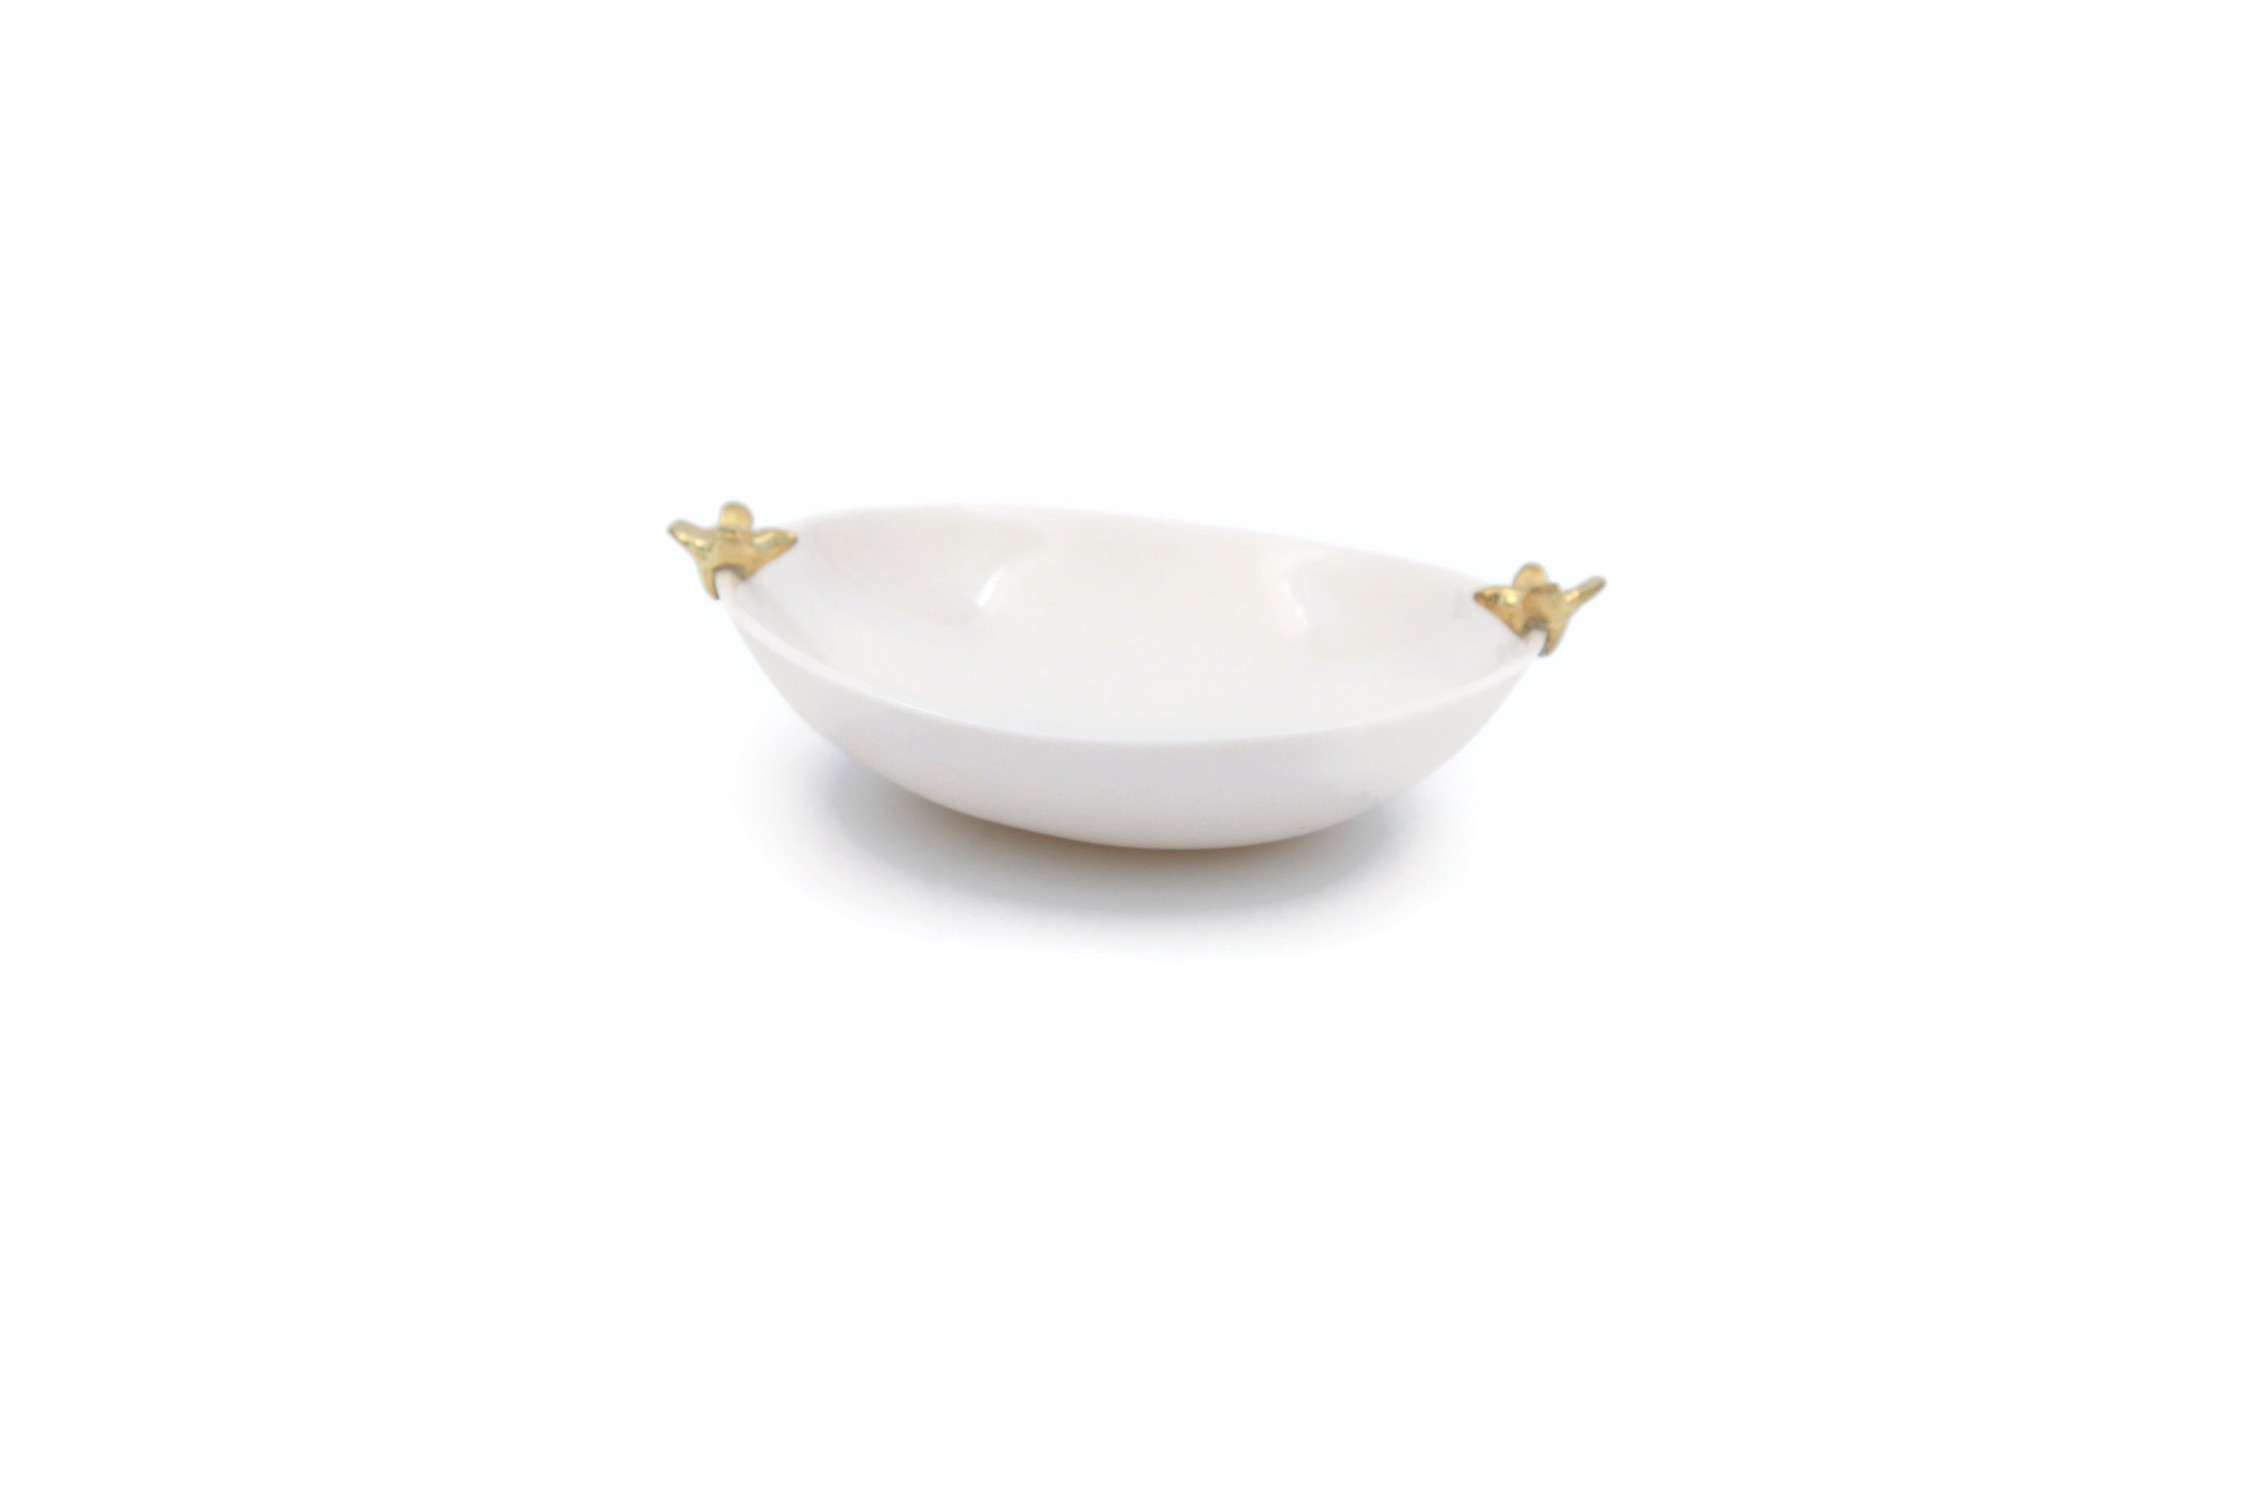 Porcelain Salt and Pepper Pinch Bowl Haute Edit Catch-All Trinket Dish